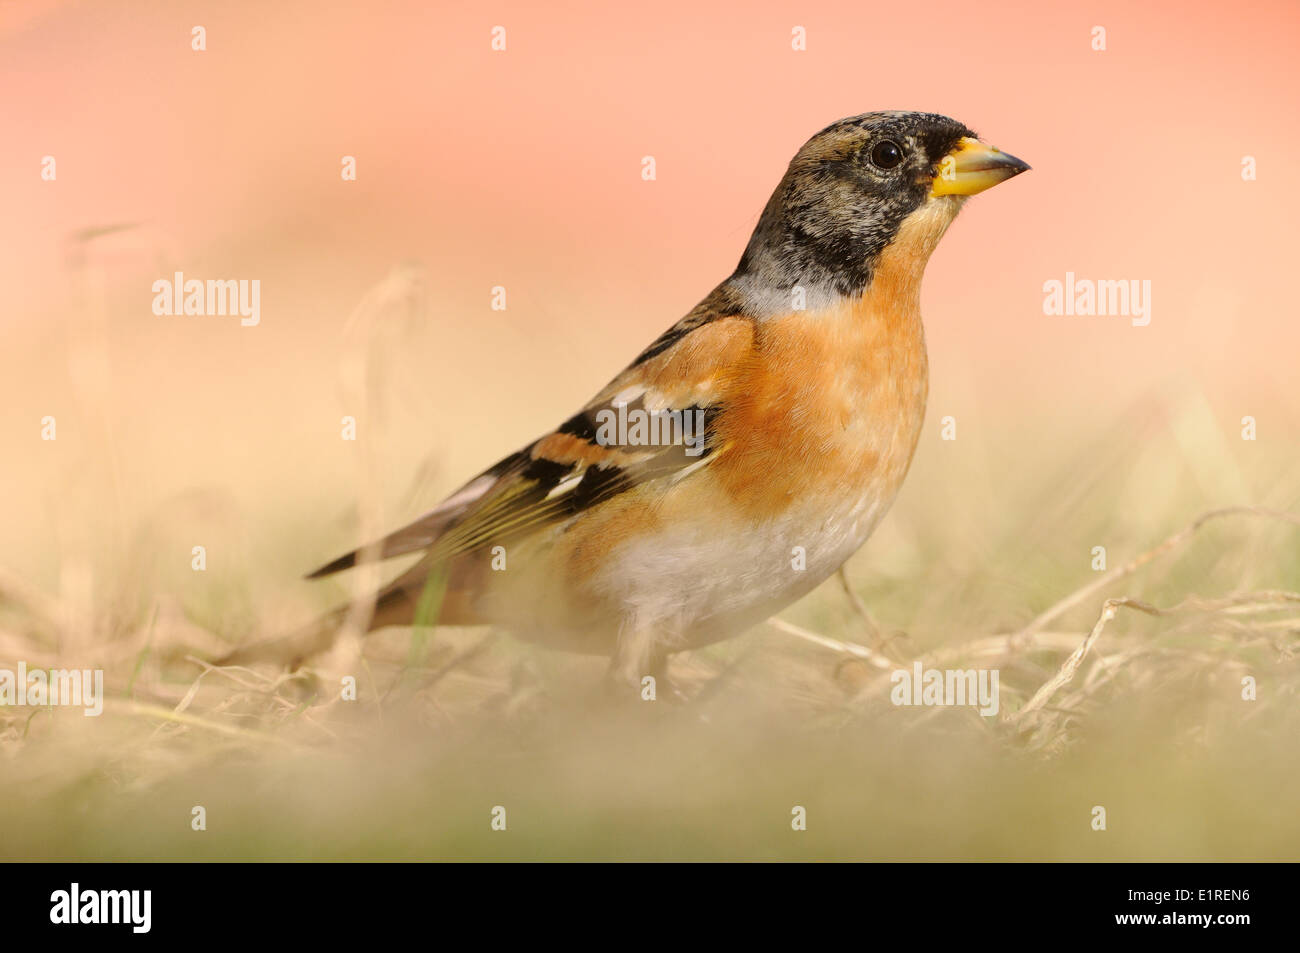 Brambling foraging on the ground - Stock Image